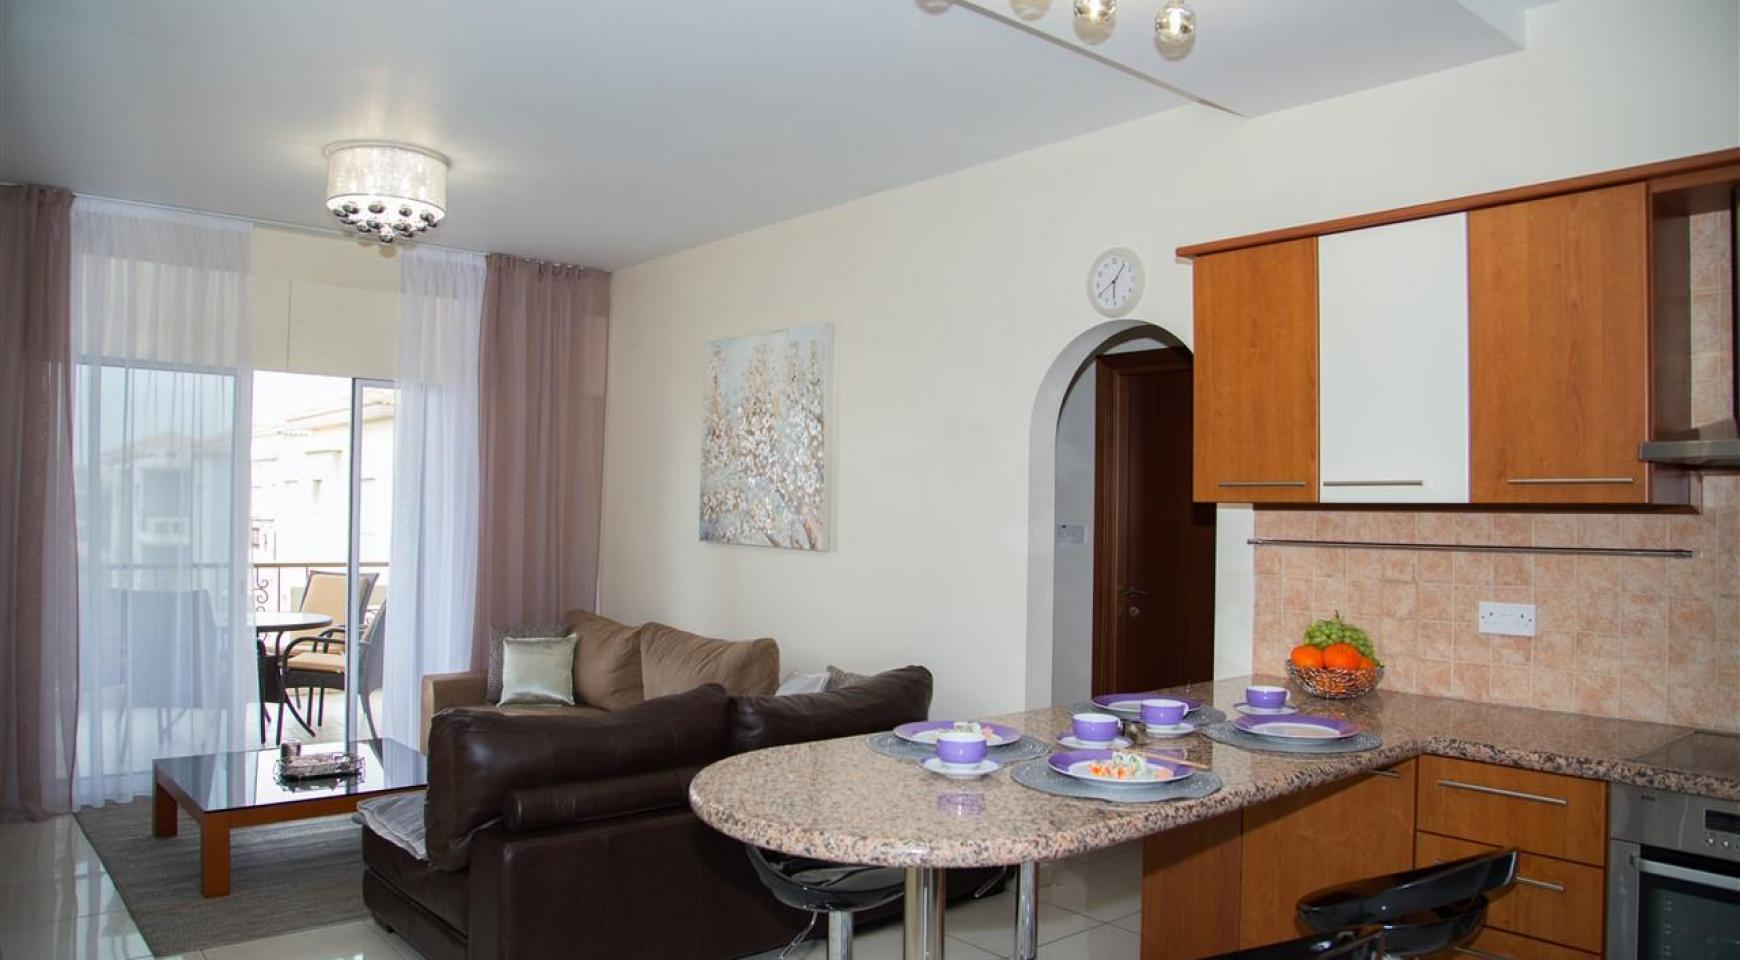 2 Bedroom Apartment in the Complex near the Sea - 1